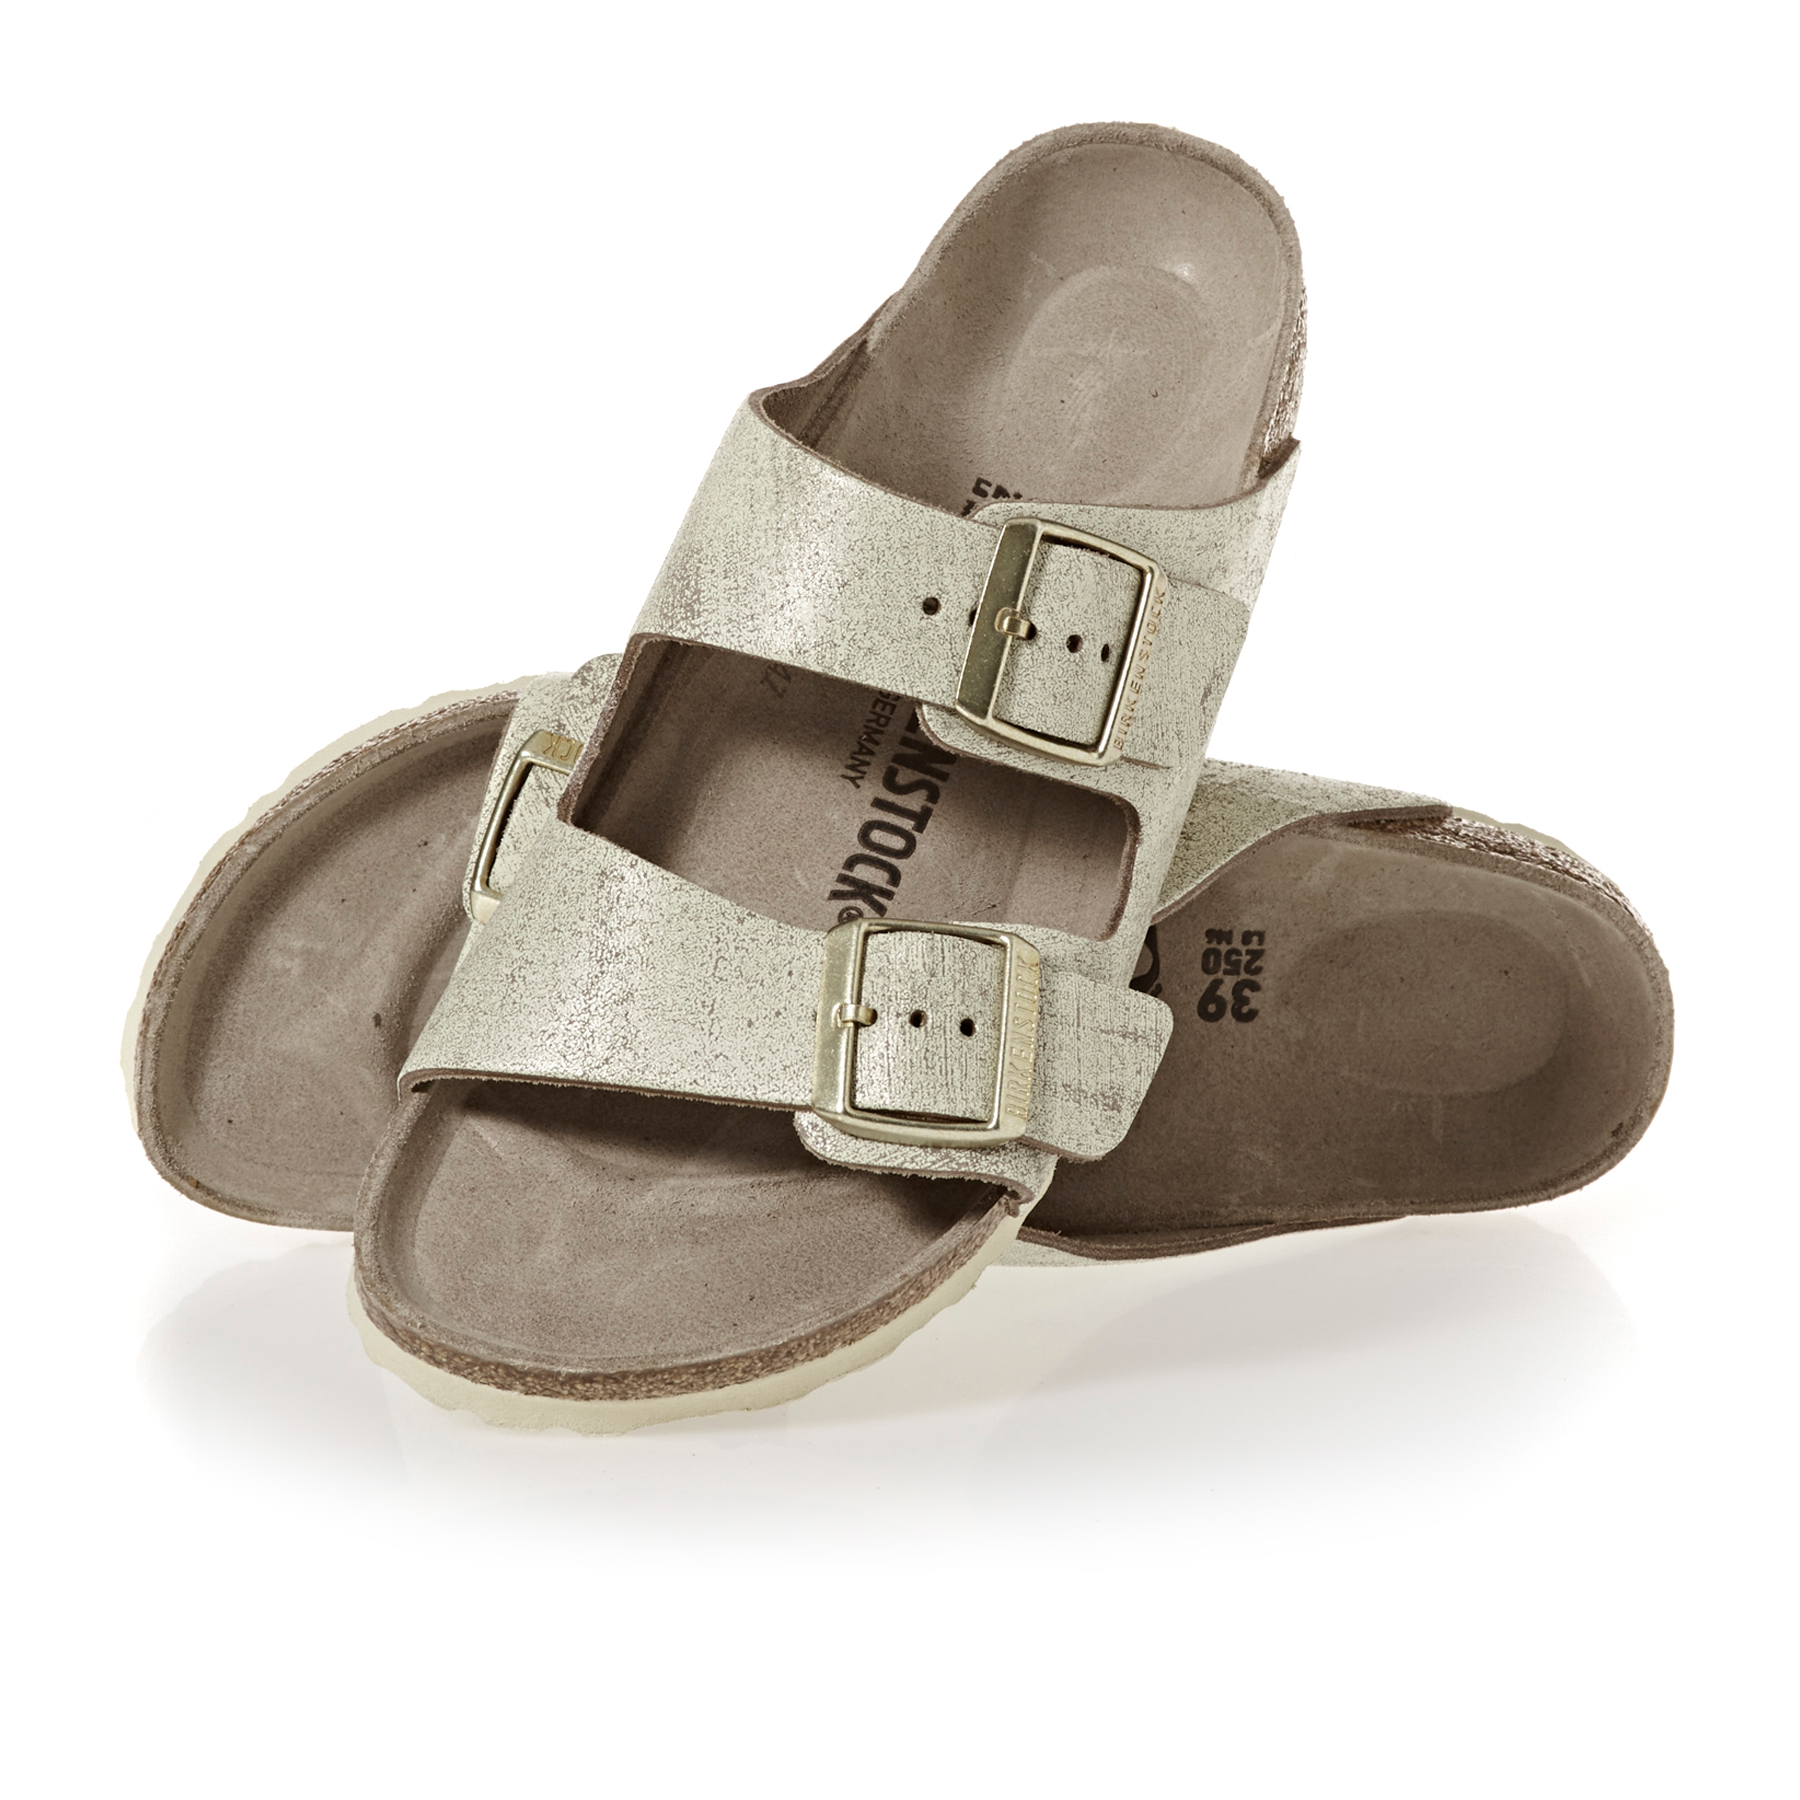 Birkenstock Arizona Leather Narrow Sandals Free Delivery options on All Orders from Surfdome UK